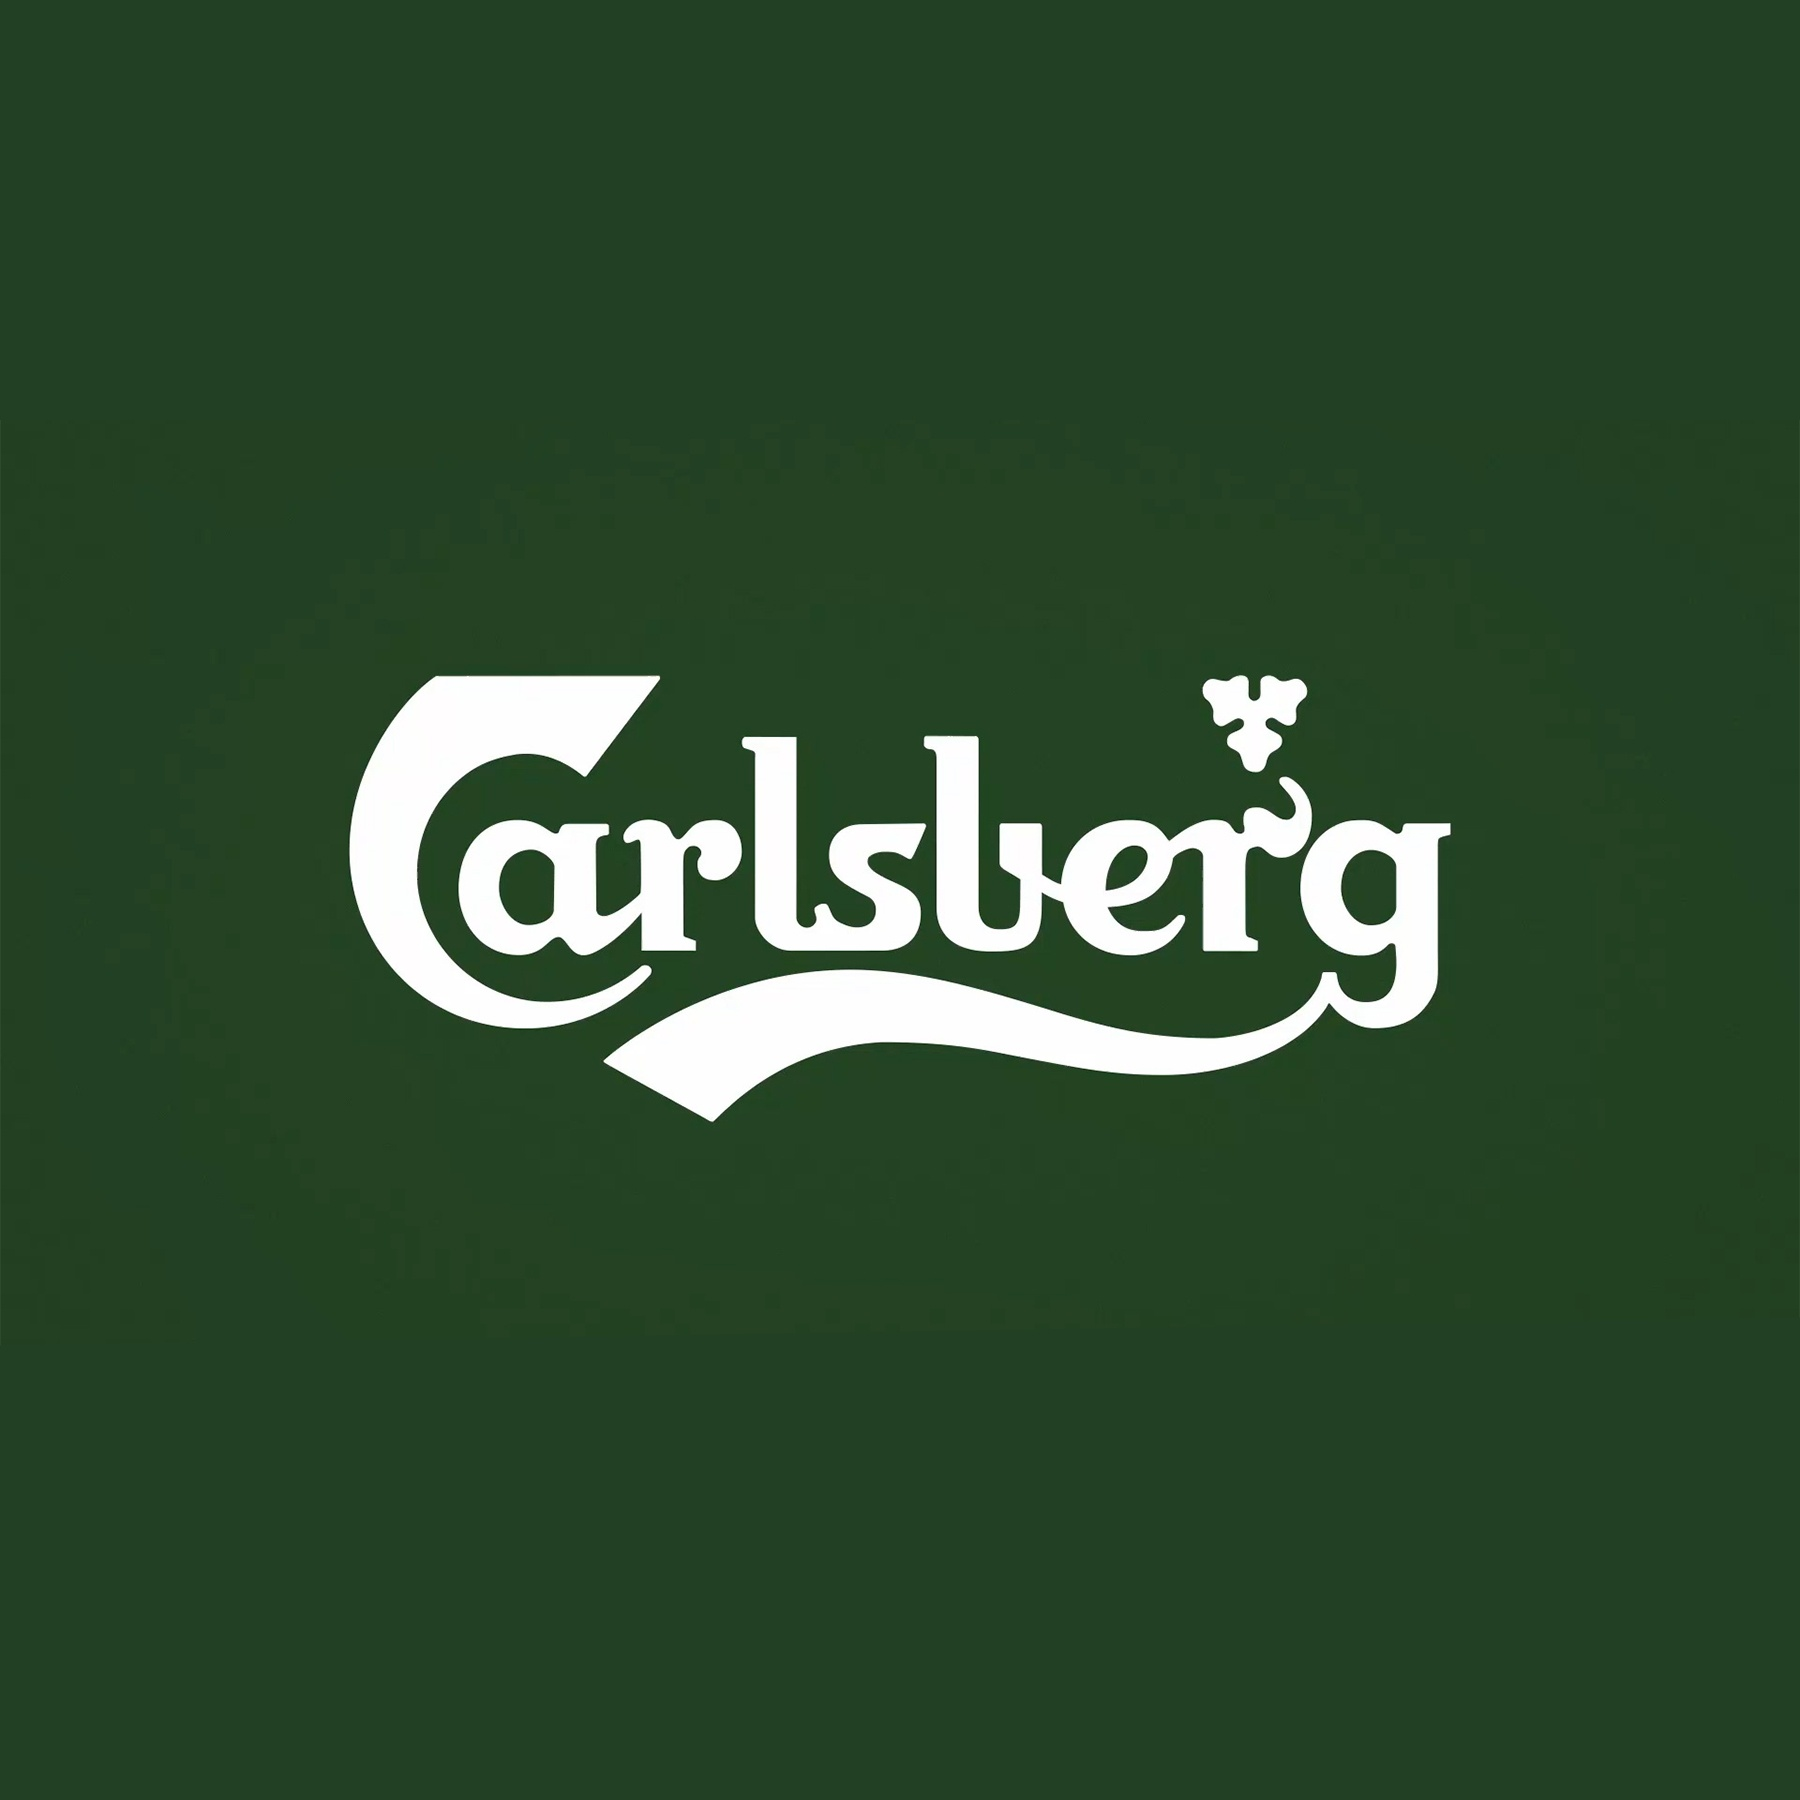 Carlsberg | BBDouro - We do Sailing